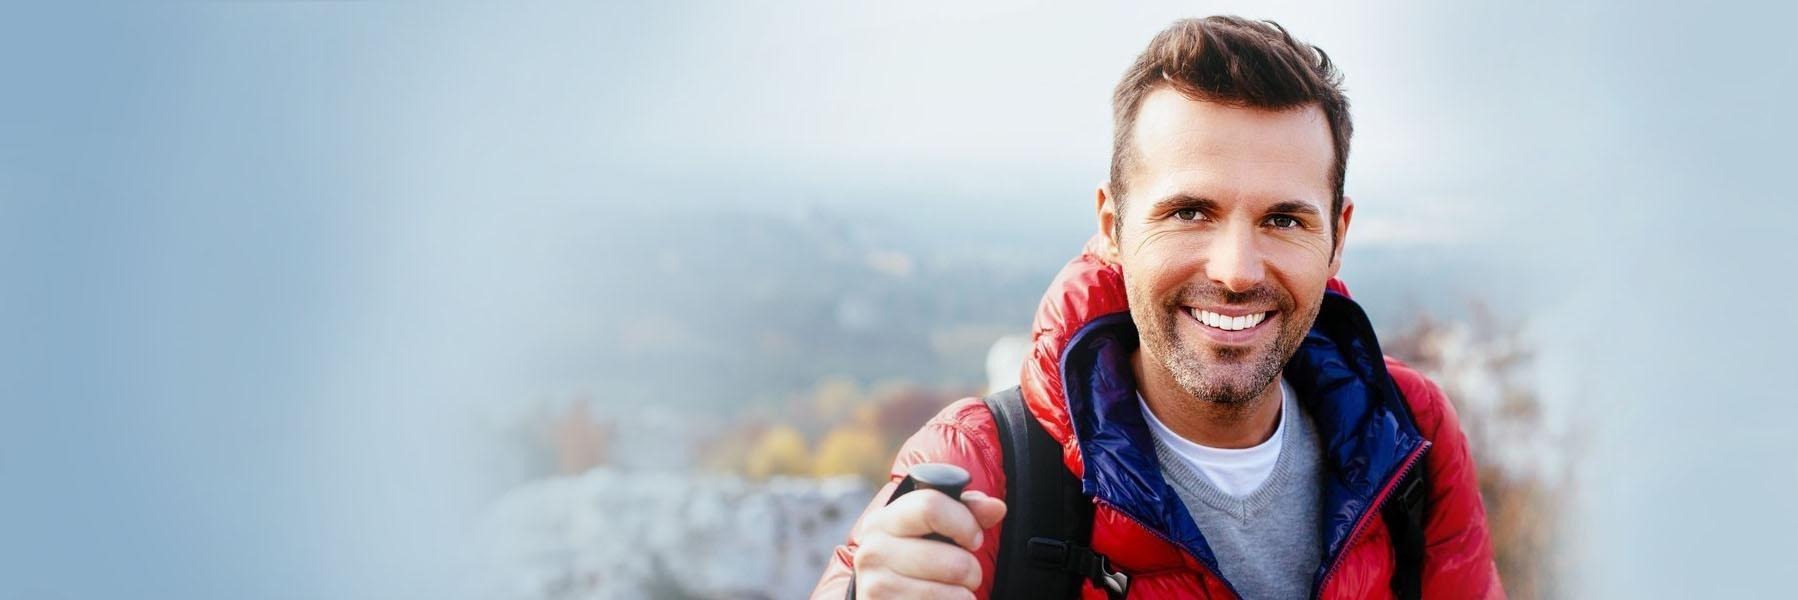 Man hiking & smiling l Root Canal Treatment Lake Charles LA